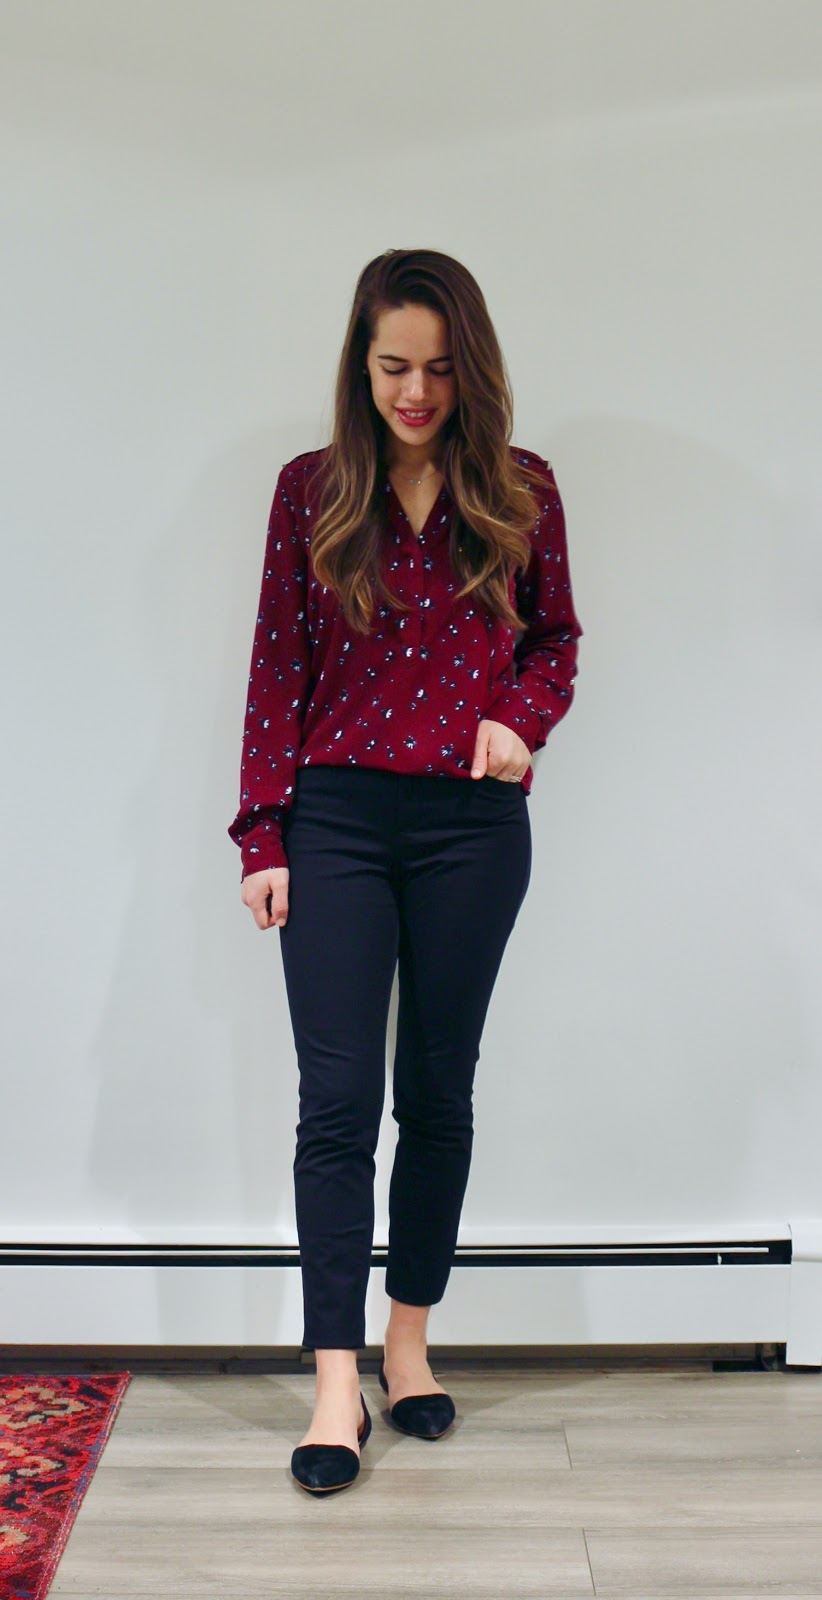 Jules in Flats - Burgundy Blouse with Skinny Ankle Pants (Business Casual Winter Workwear on a Budget)